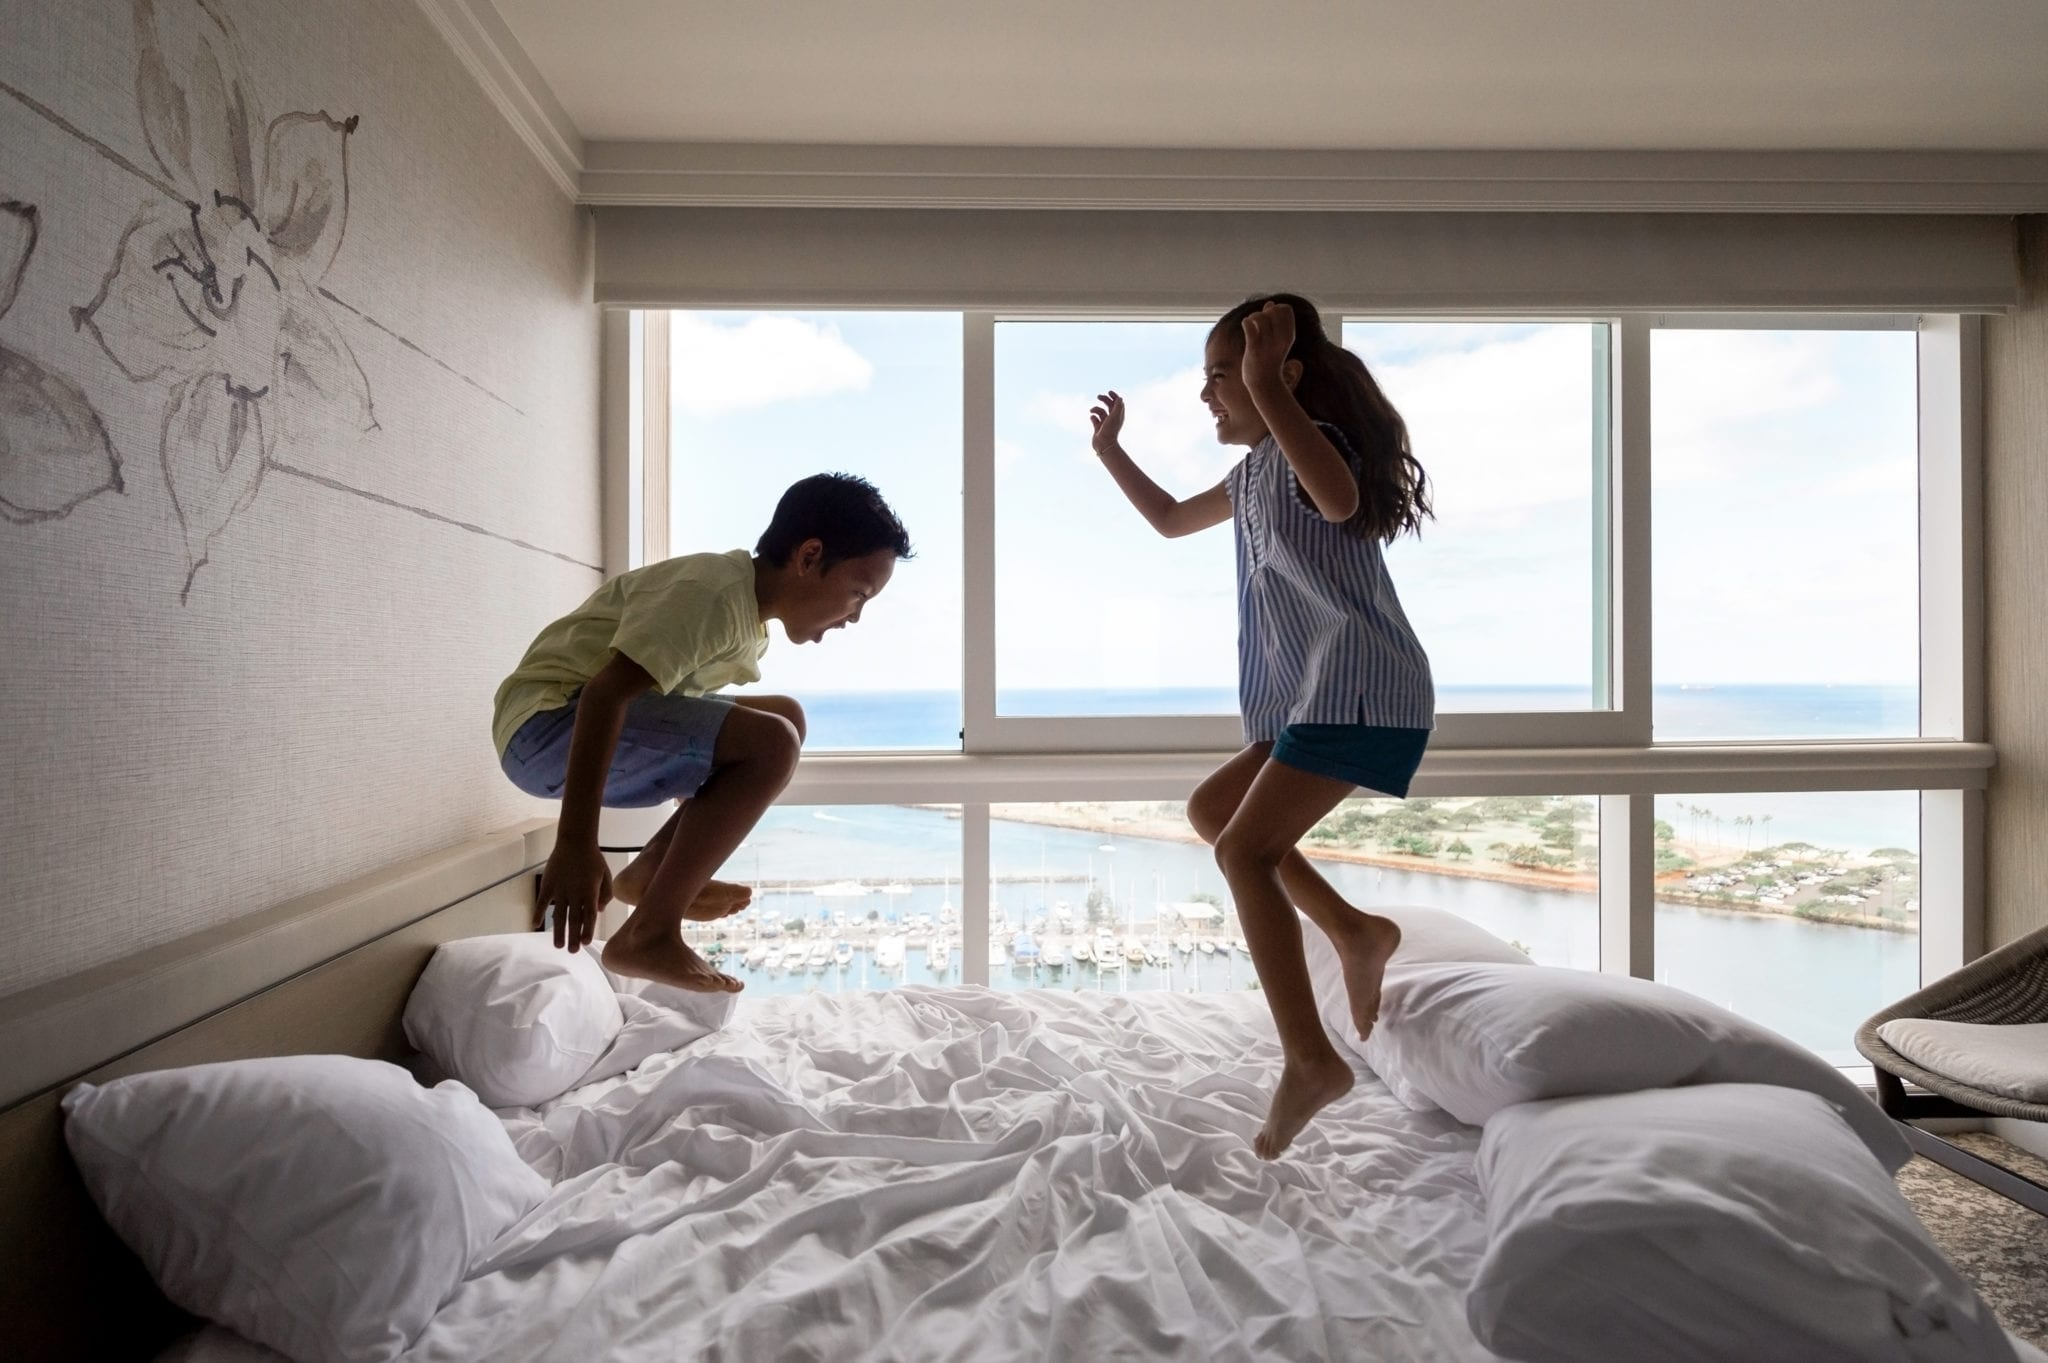 Children jumping on a bed.